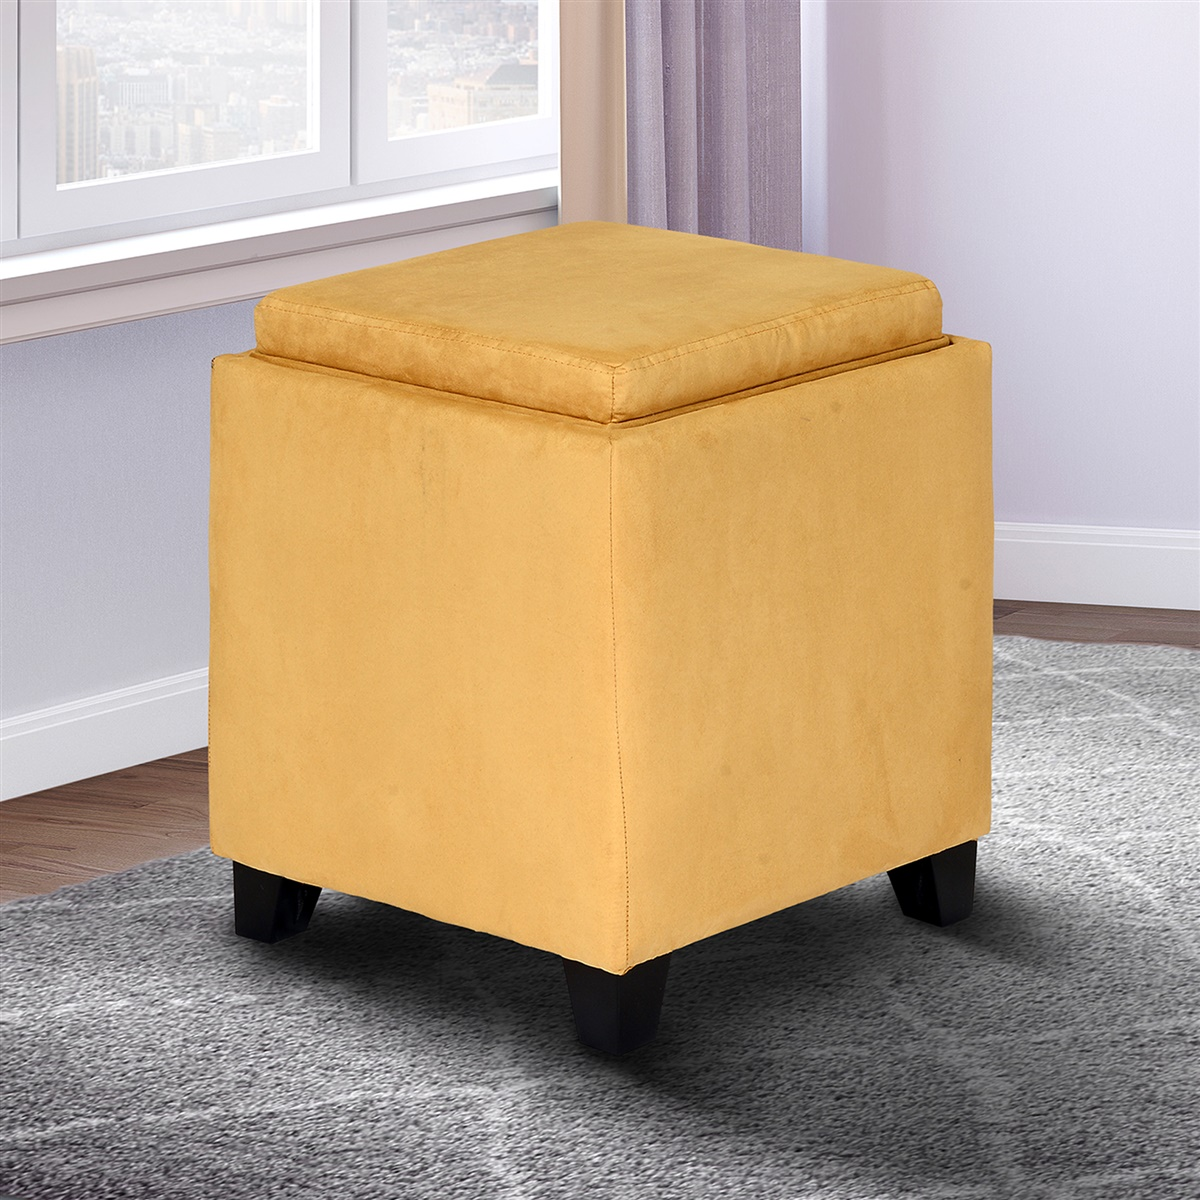 Awesome Rainbow Microfiber Storage Ottoman With Tray Uwap Interior Chair Design Uwaporg